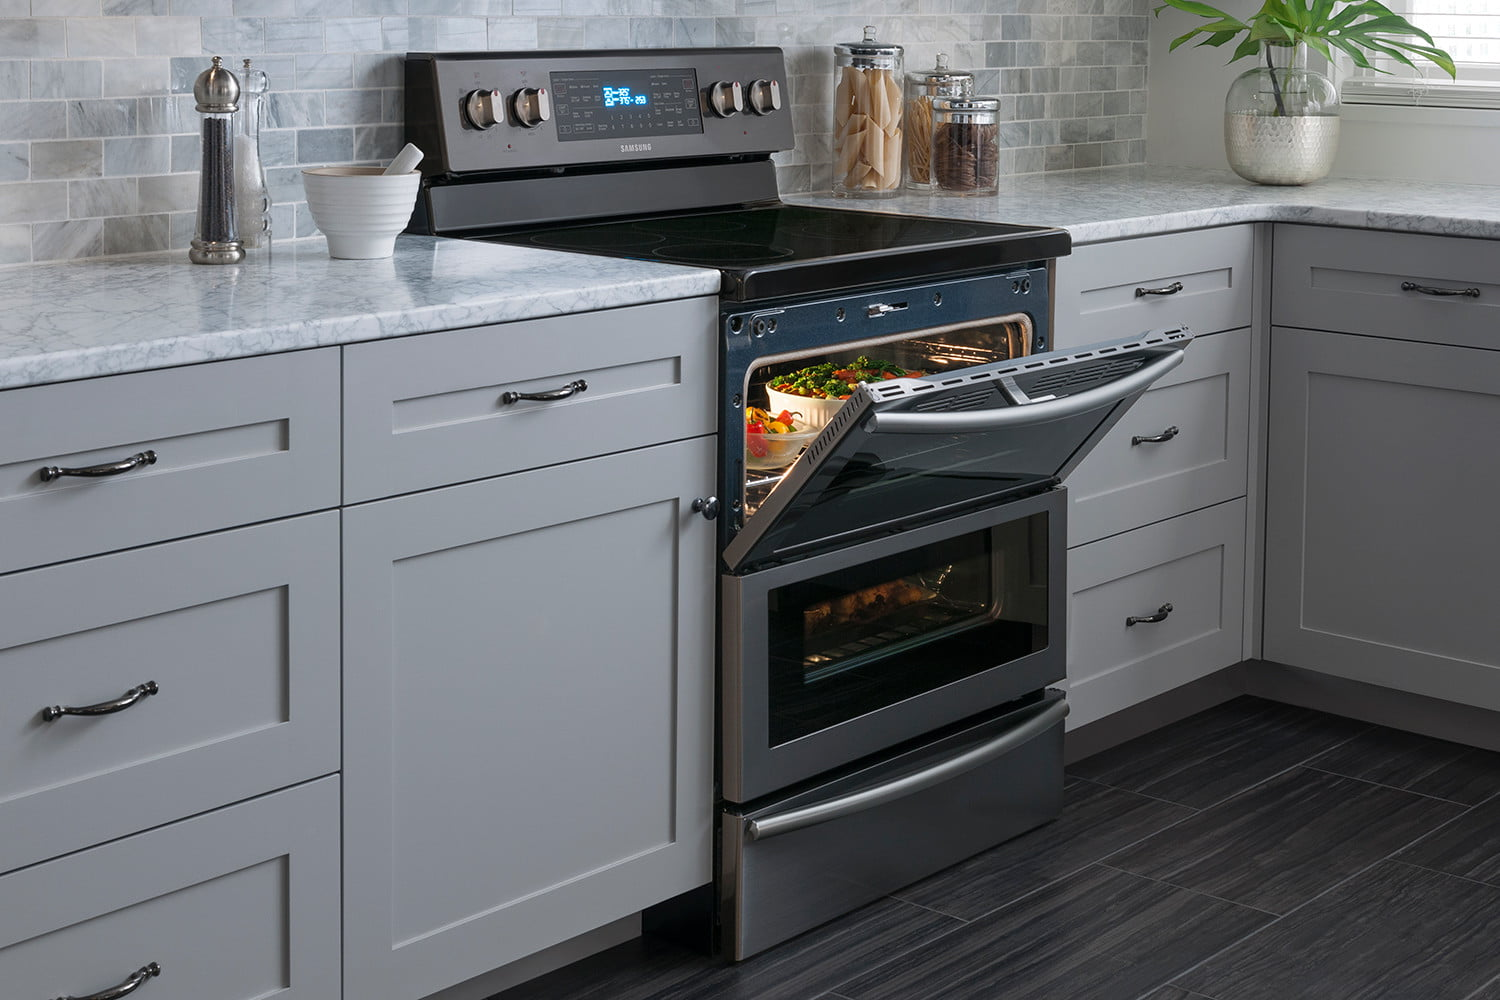 best kitchen stoves lighting options the oven ranges of 2019 digital trends black stainless steel appliances trend dual door range